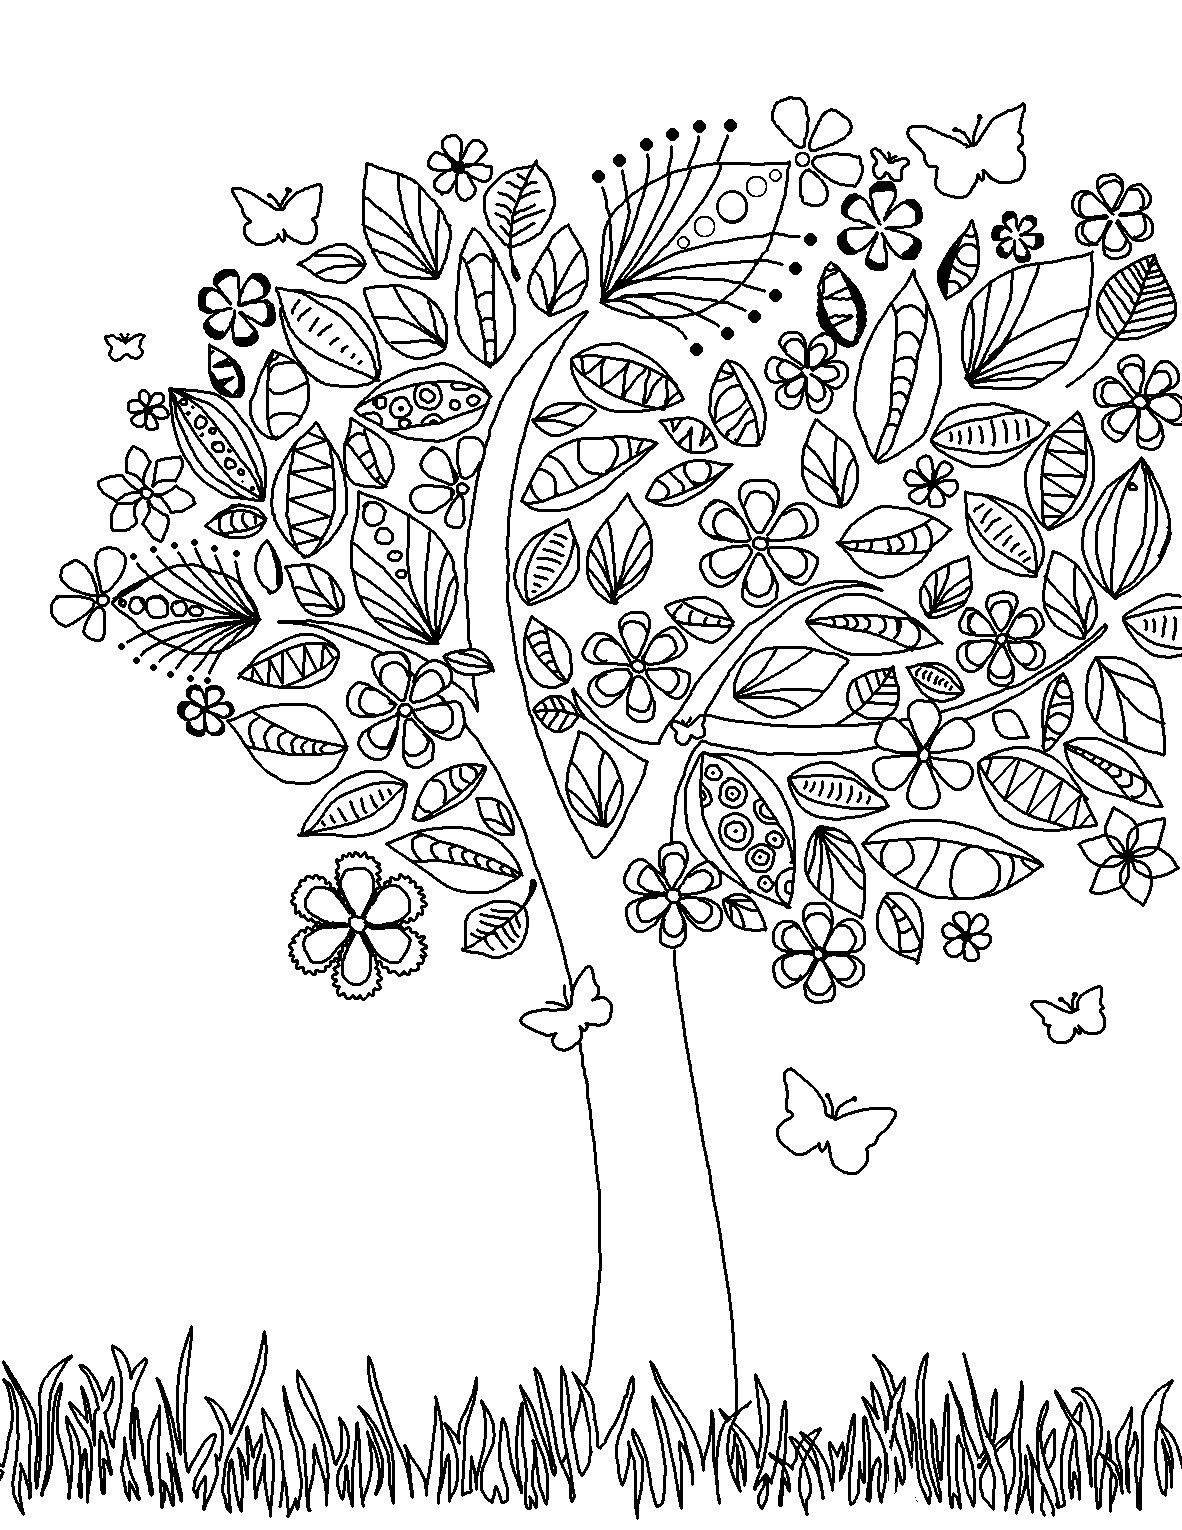 Free Printable Coloring Sheets Adults  Free Printable Adult Coloring Pages